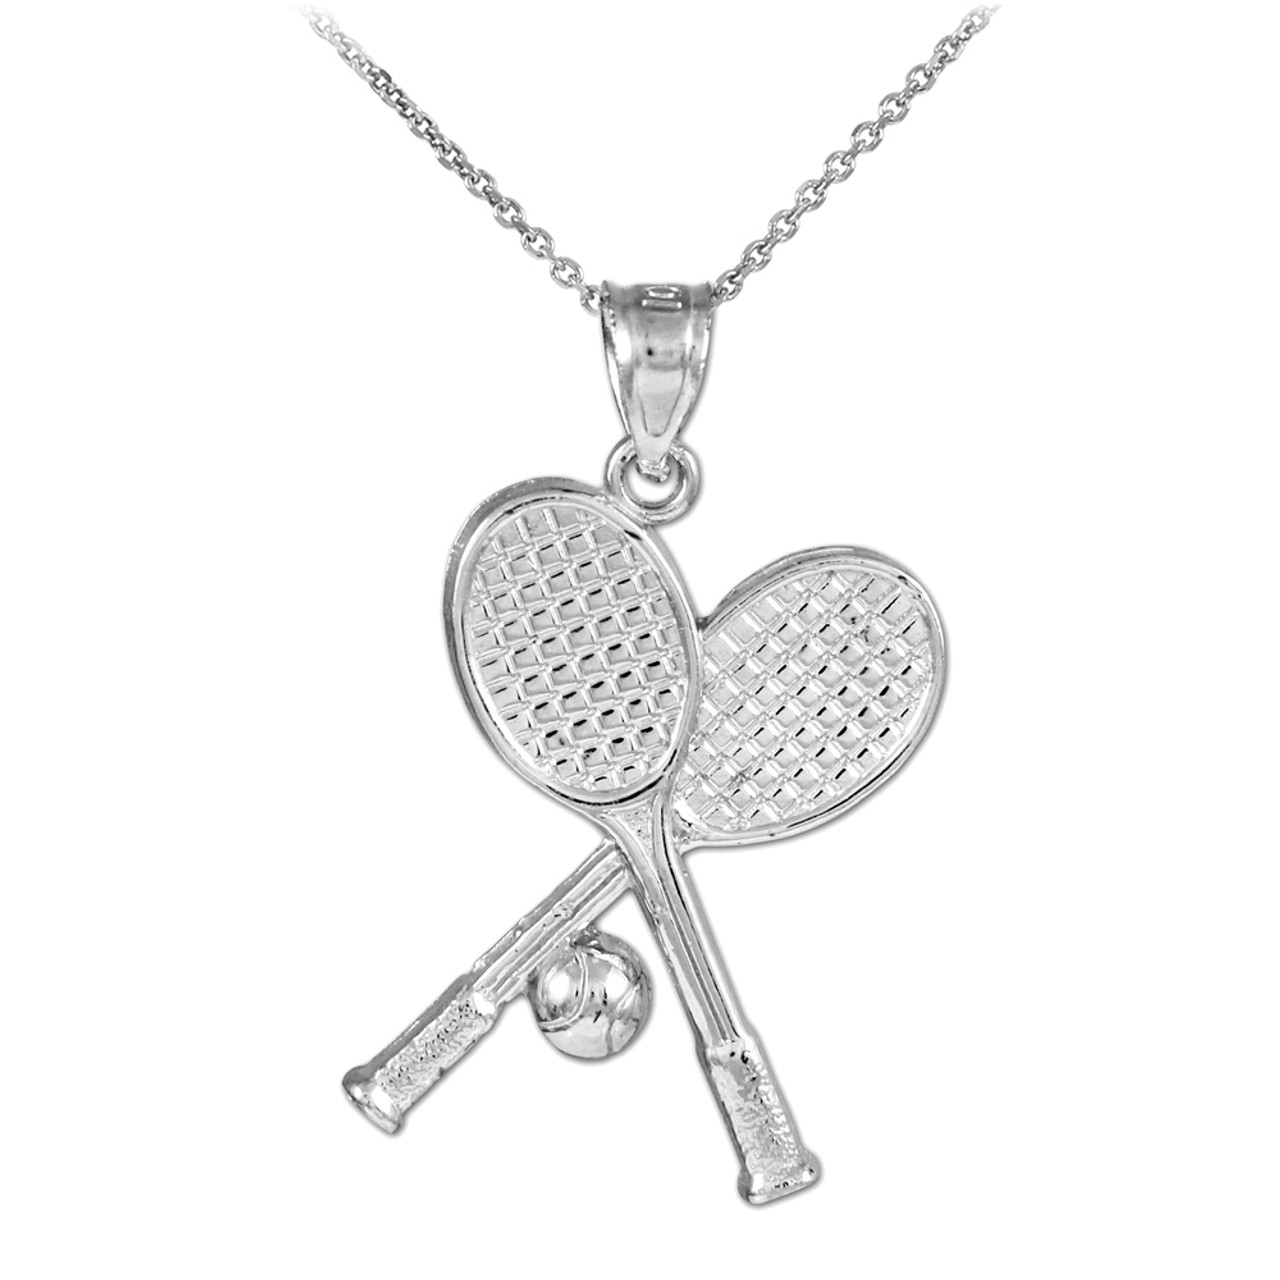 Tennis racquets and ball white gold charm sports pendant necklace tennis racquets and ball white gold charm sports pendant necklace aloadofball Images